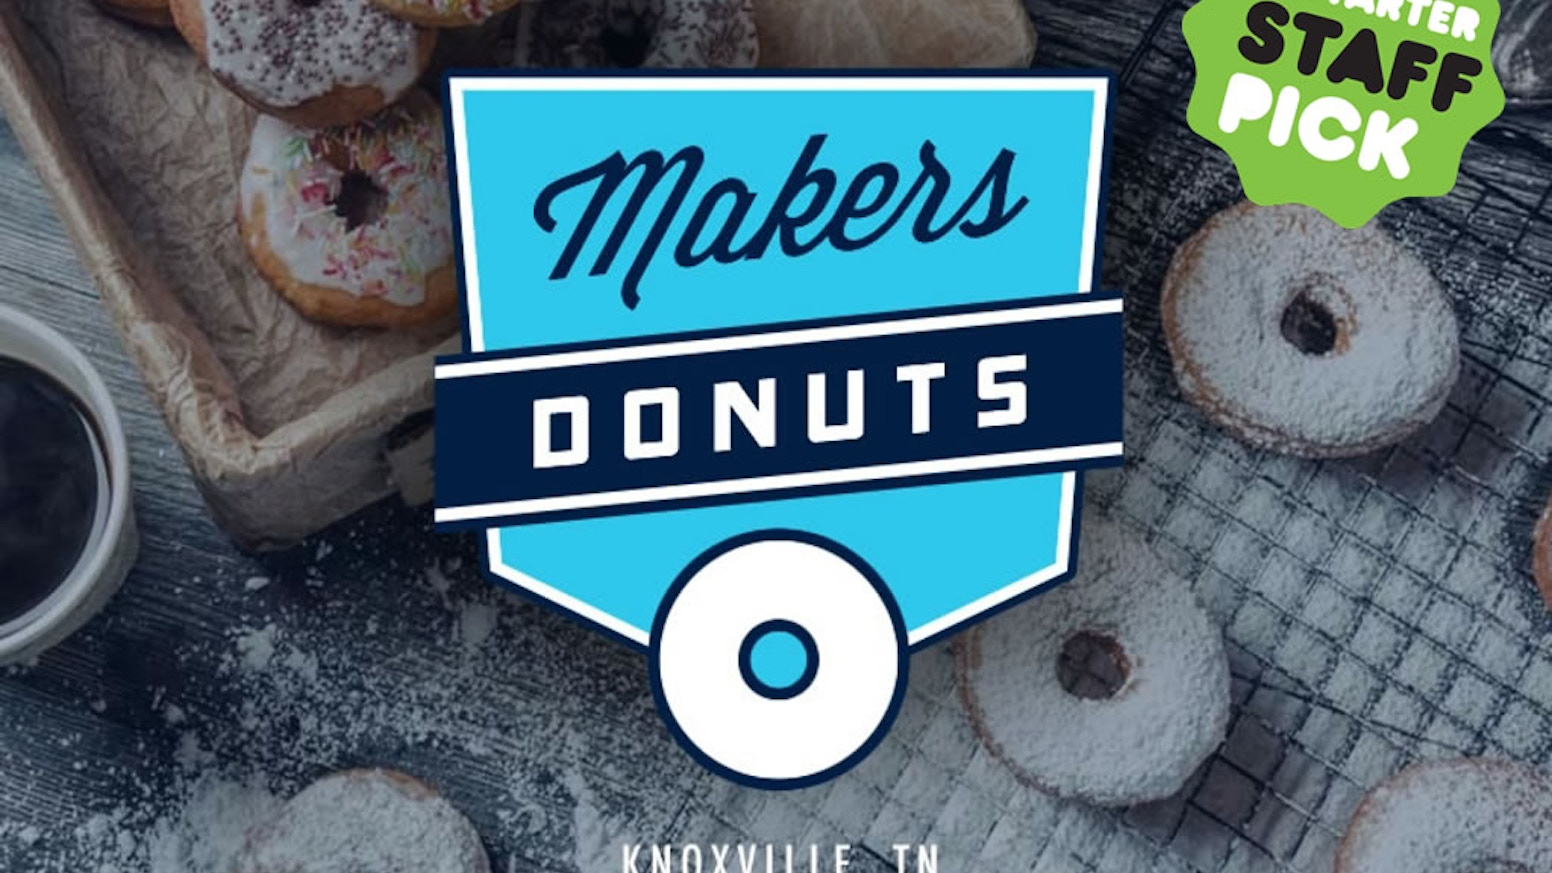 f92f1182cfe Makers Donuts - Knoxville